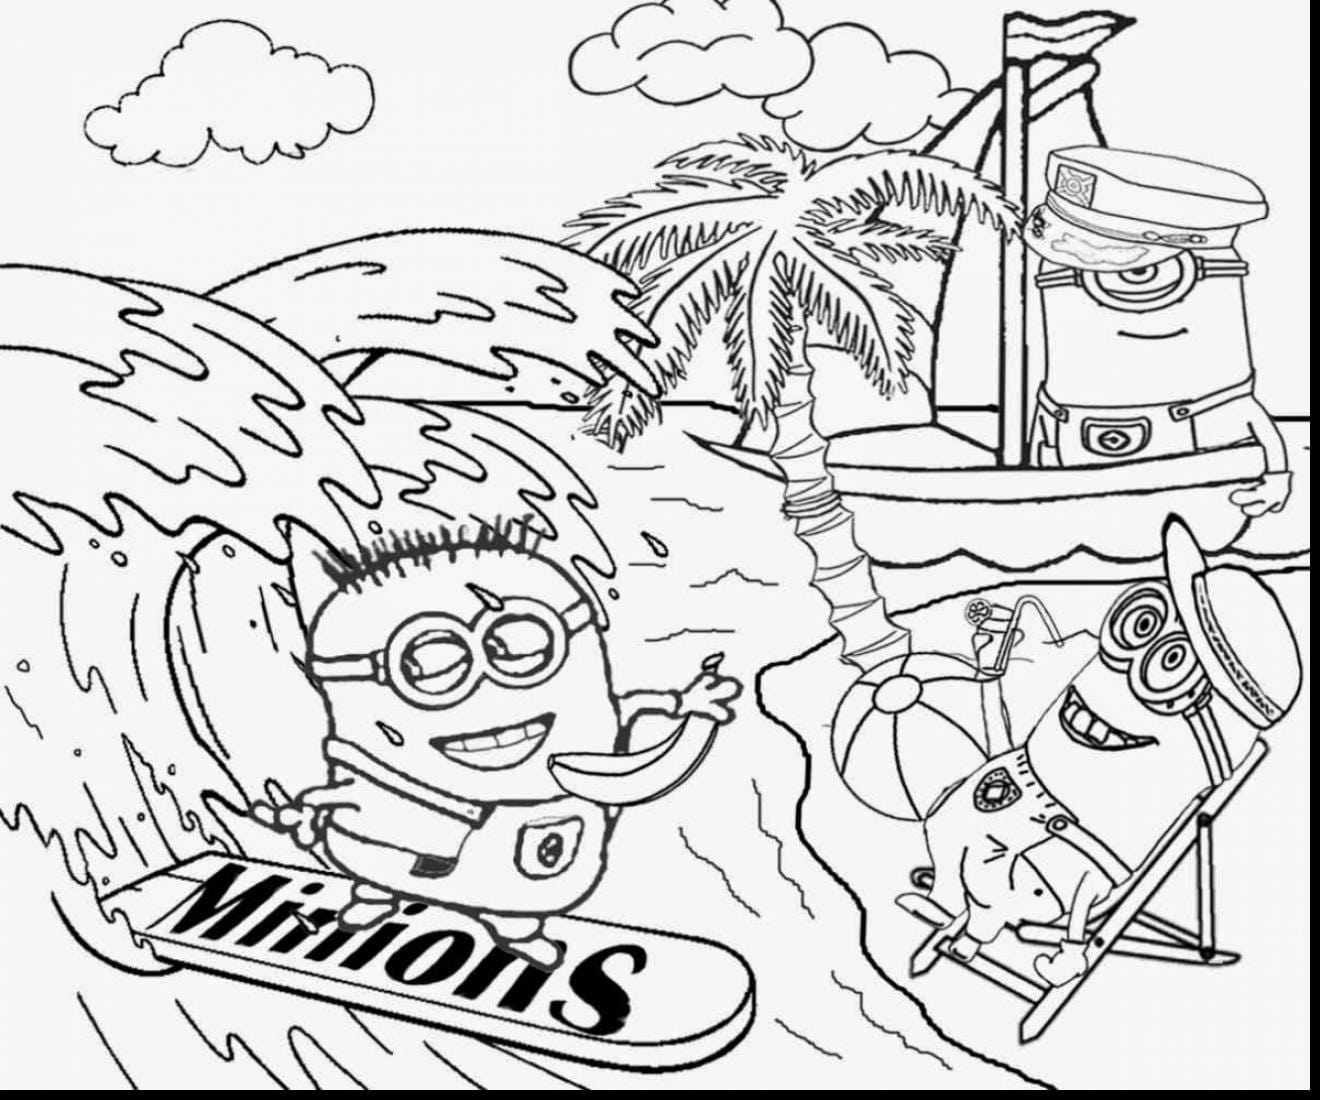 Terrific Minions Coloring Pages Top 35 Despicable Me 2 For Your